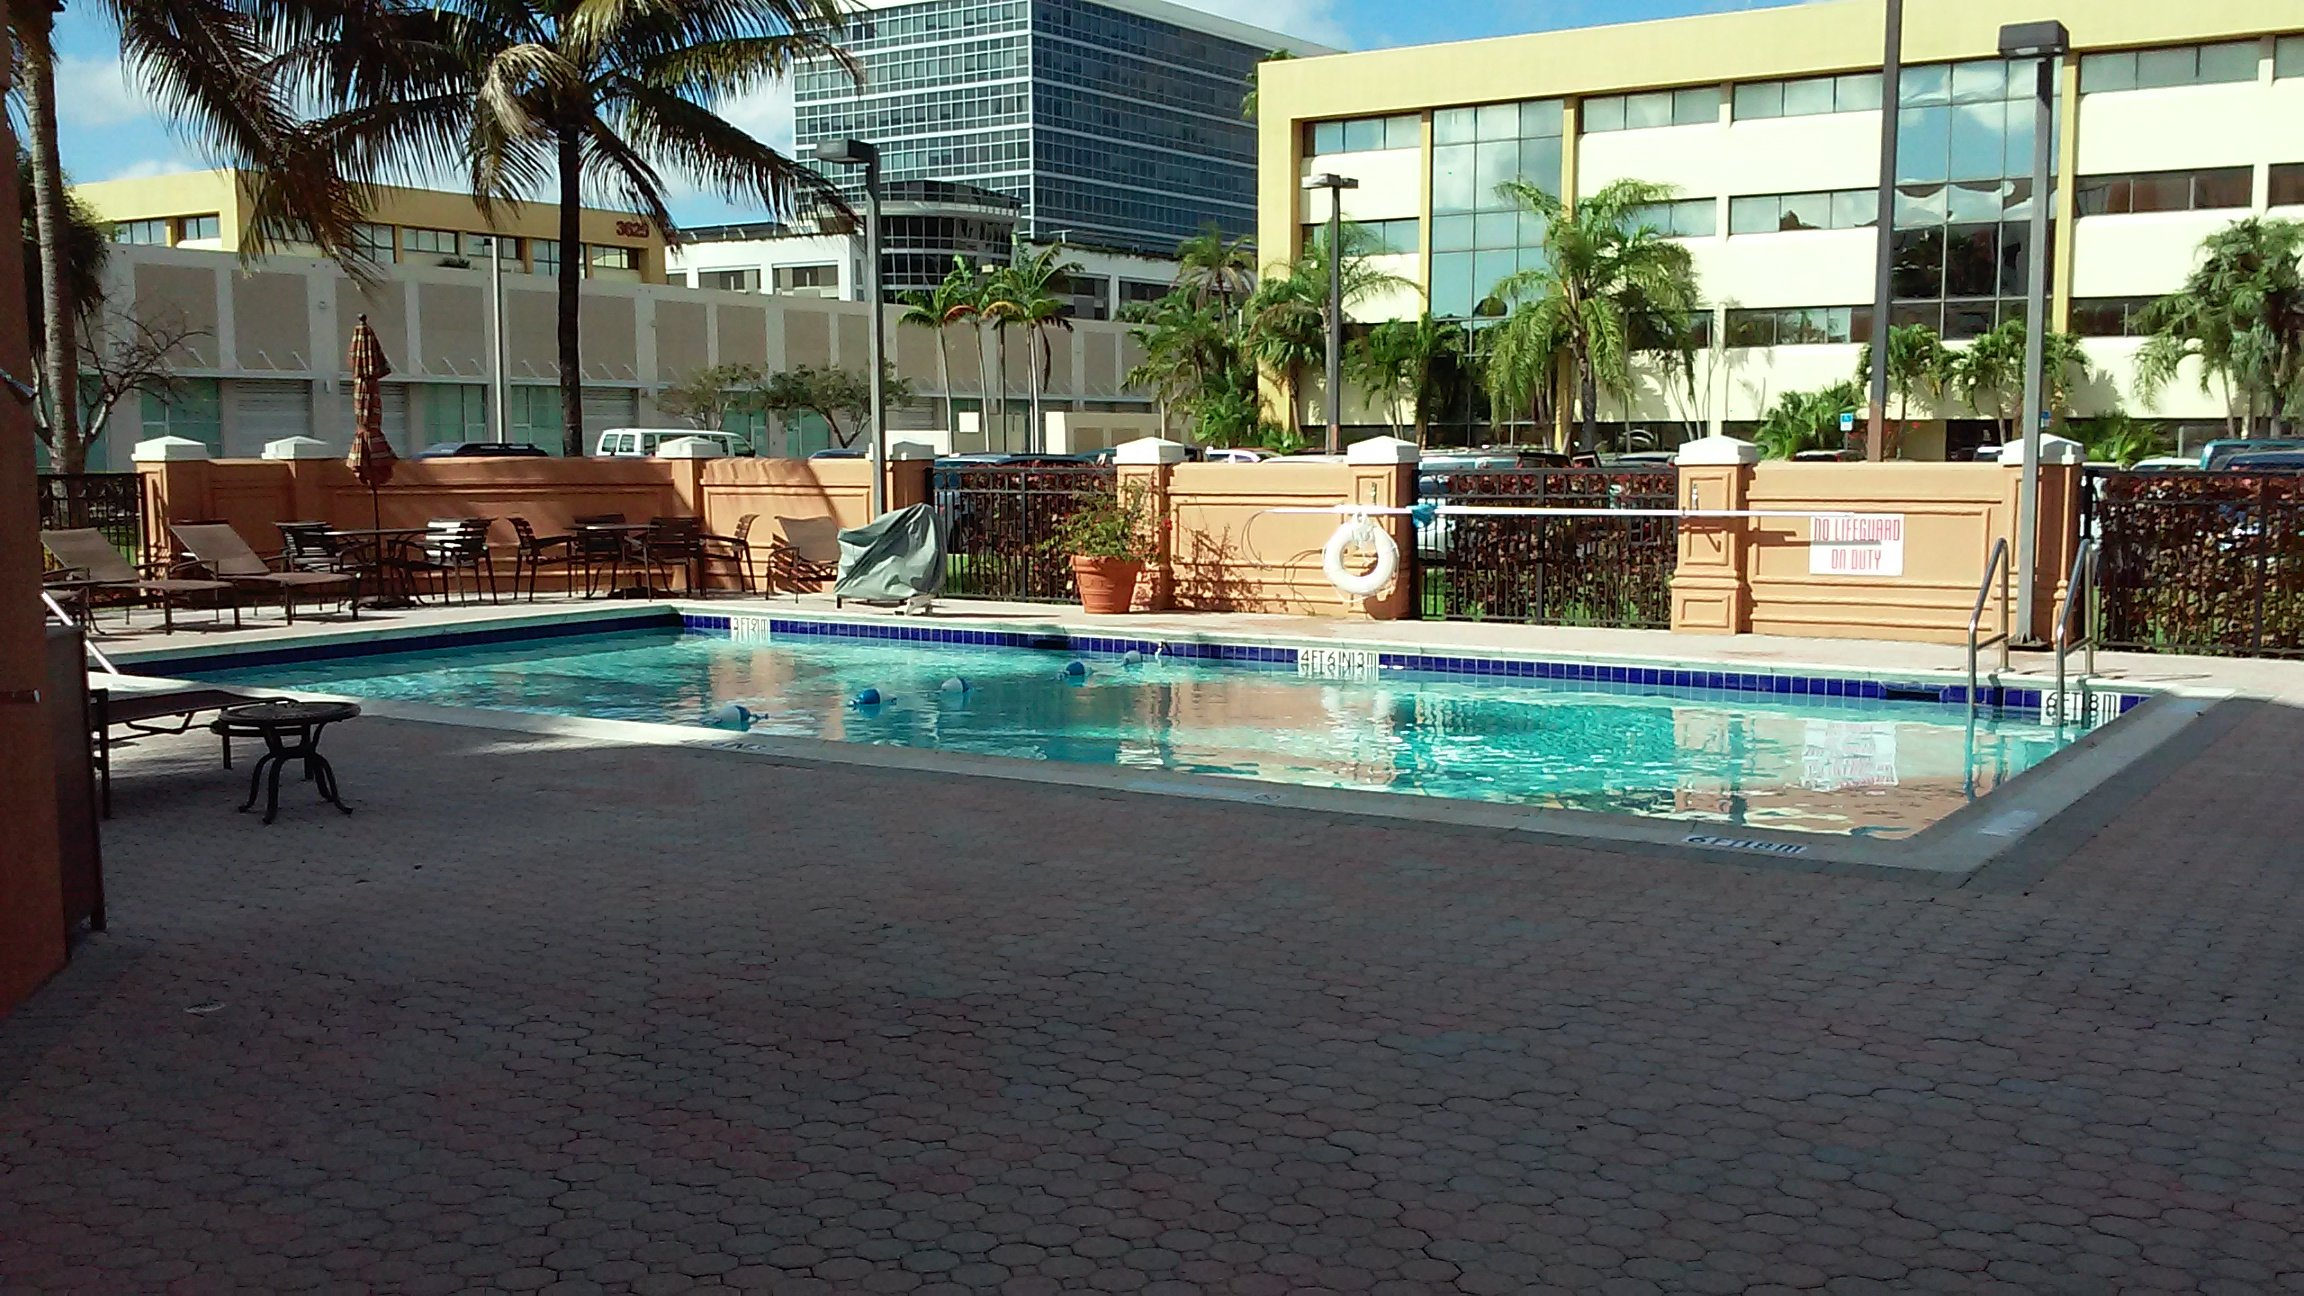 Hyatt Place Miami Airport West Doral Review The Lazy